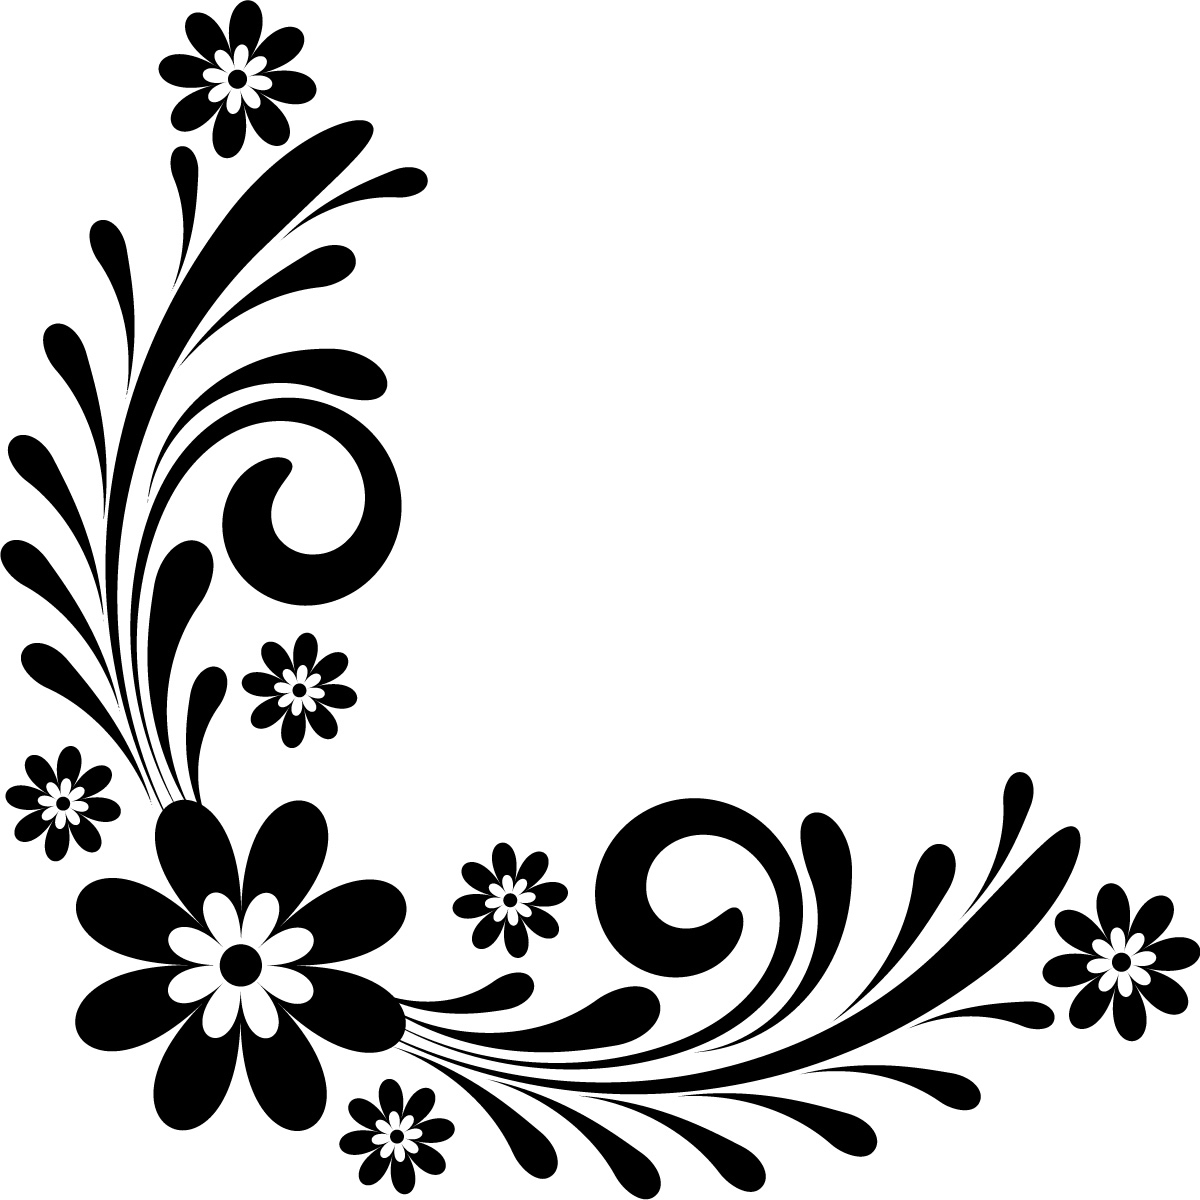 1200x1200 Images Of Line Drawings Of Flower Border Images Of Line Drawings